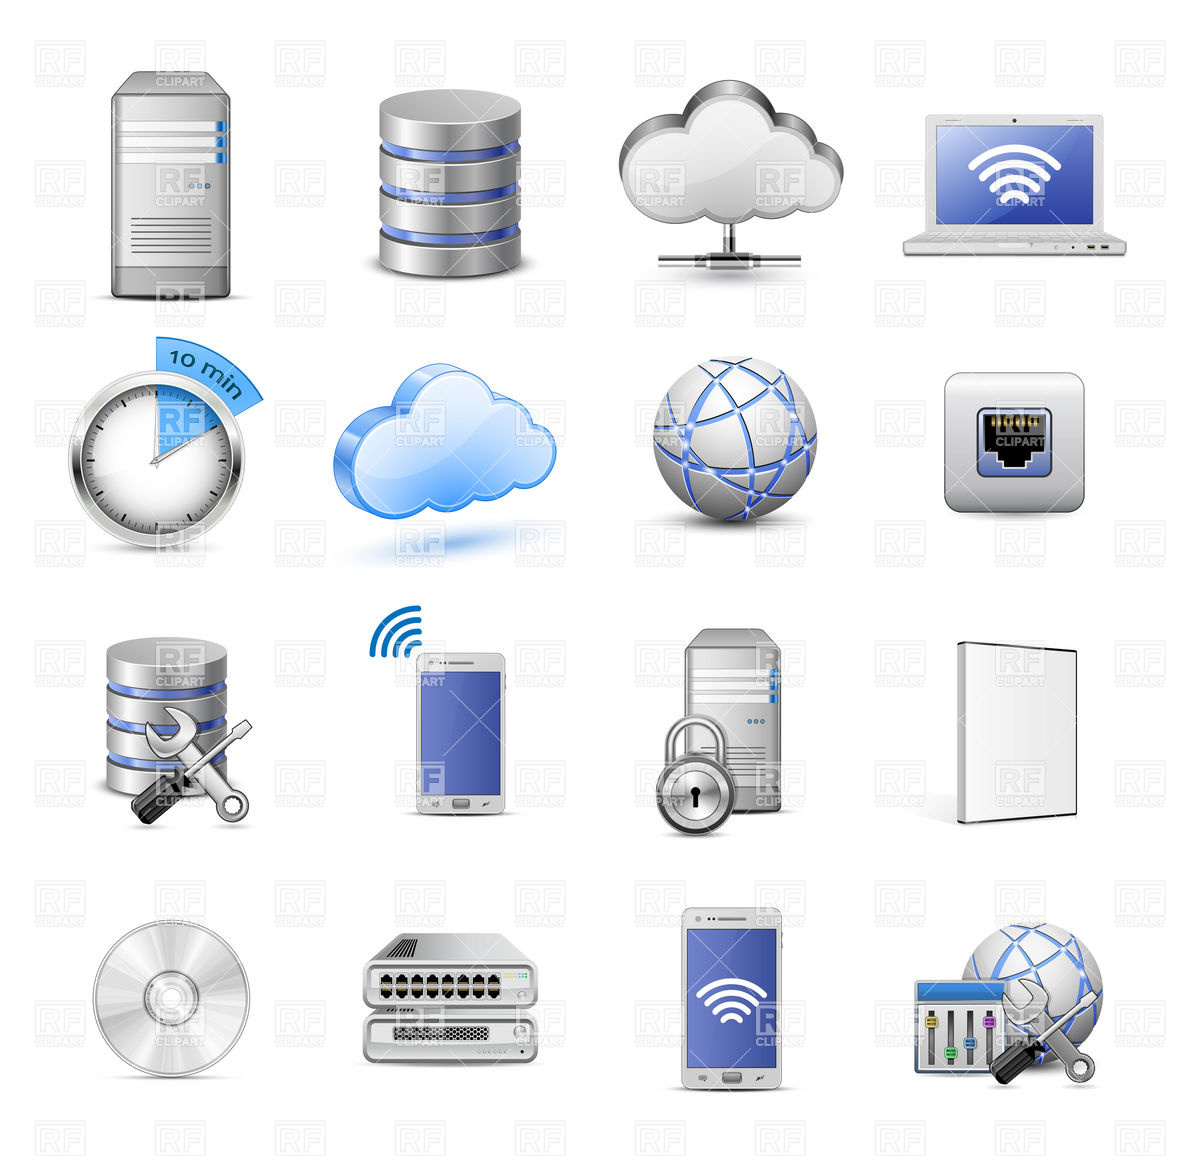 Server Database And Cloud Computing Icon Set 5462 Icons And Emblems